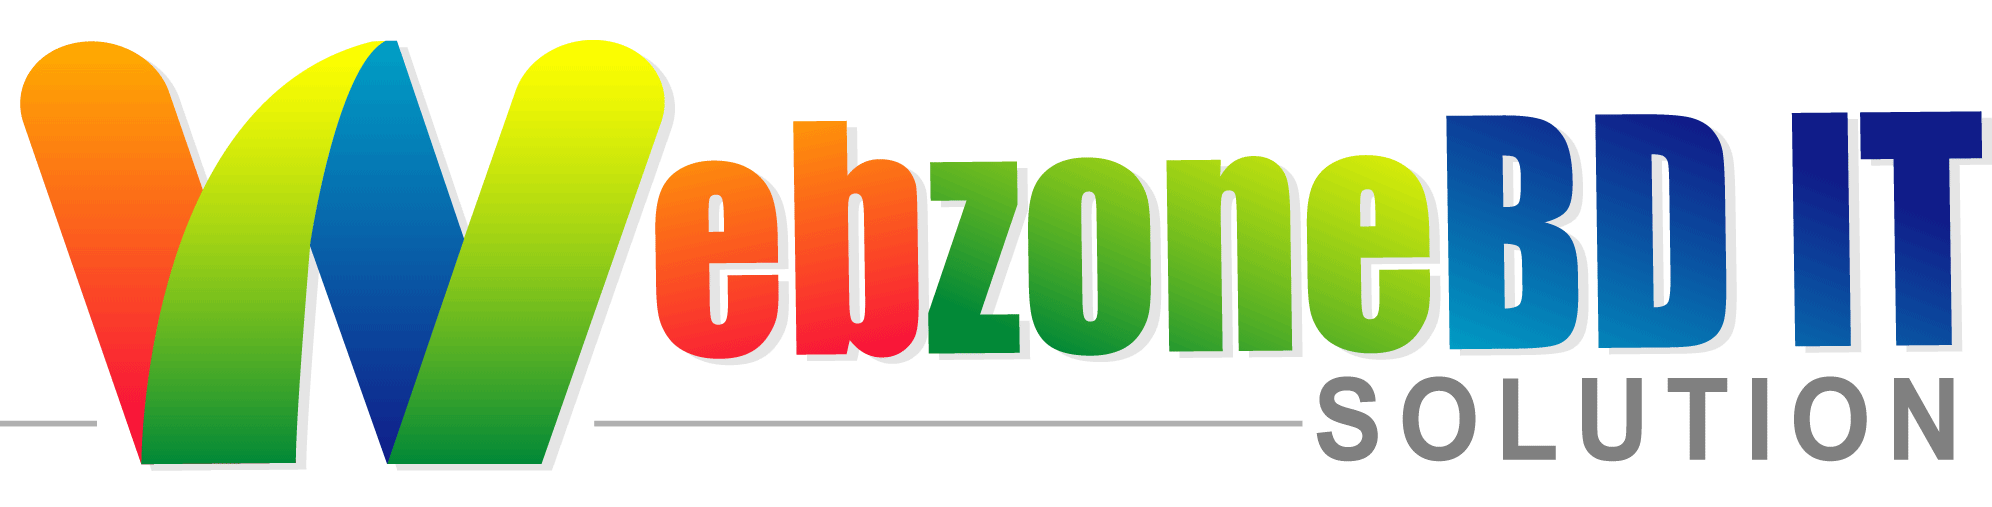 WebzoneBD IT Solution | Website Development Company